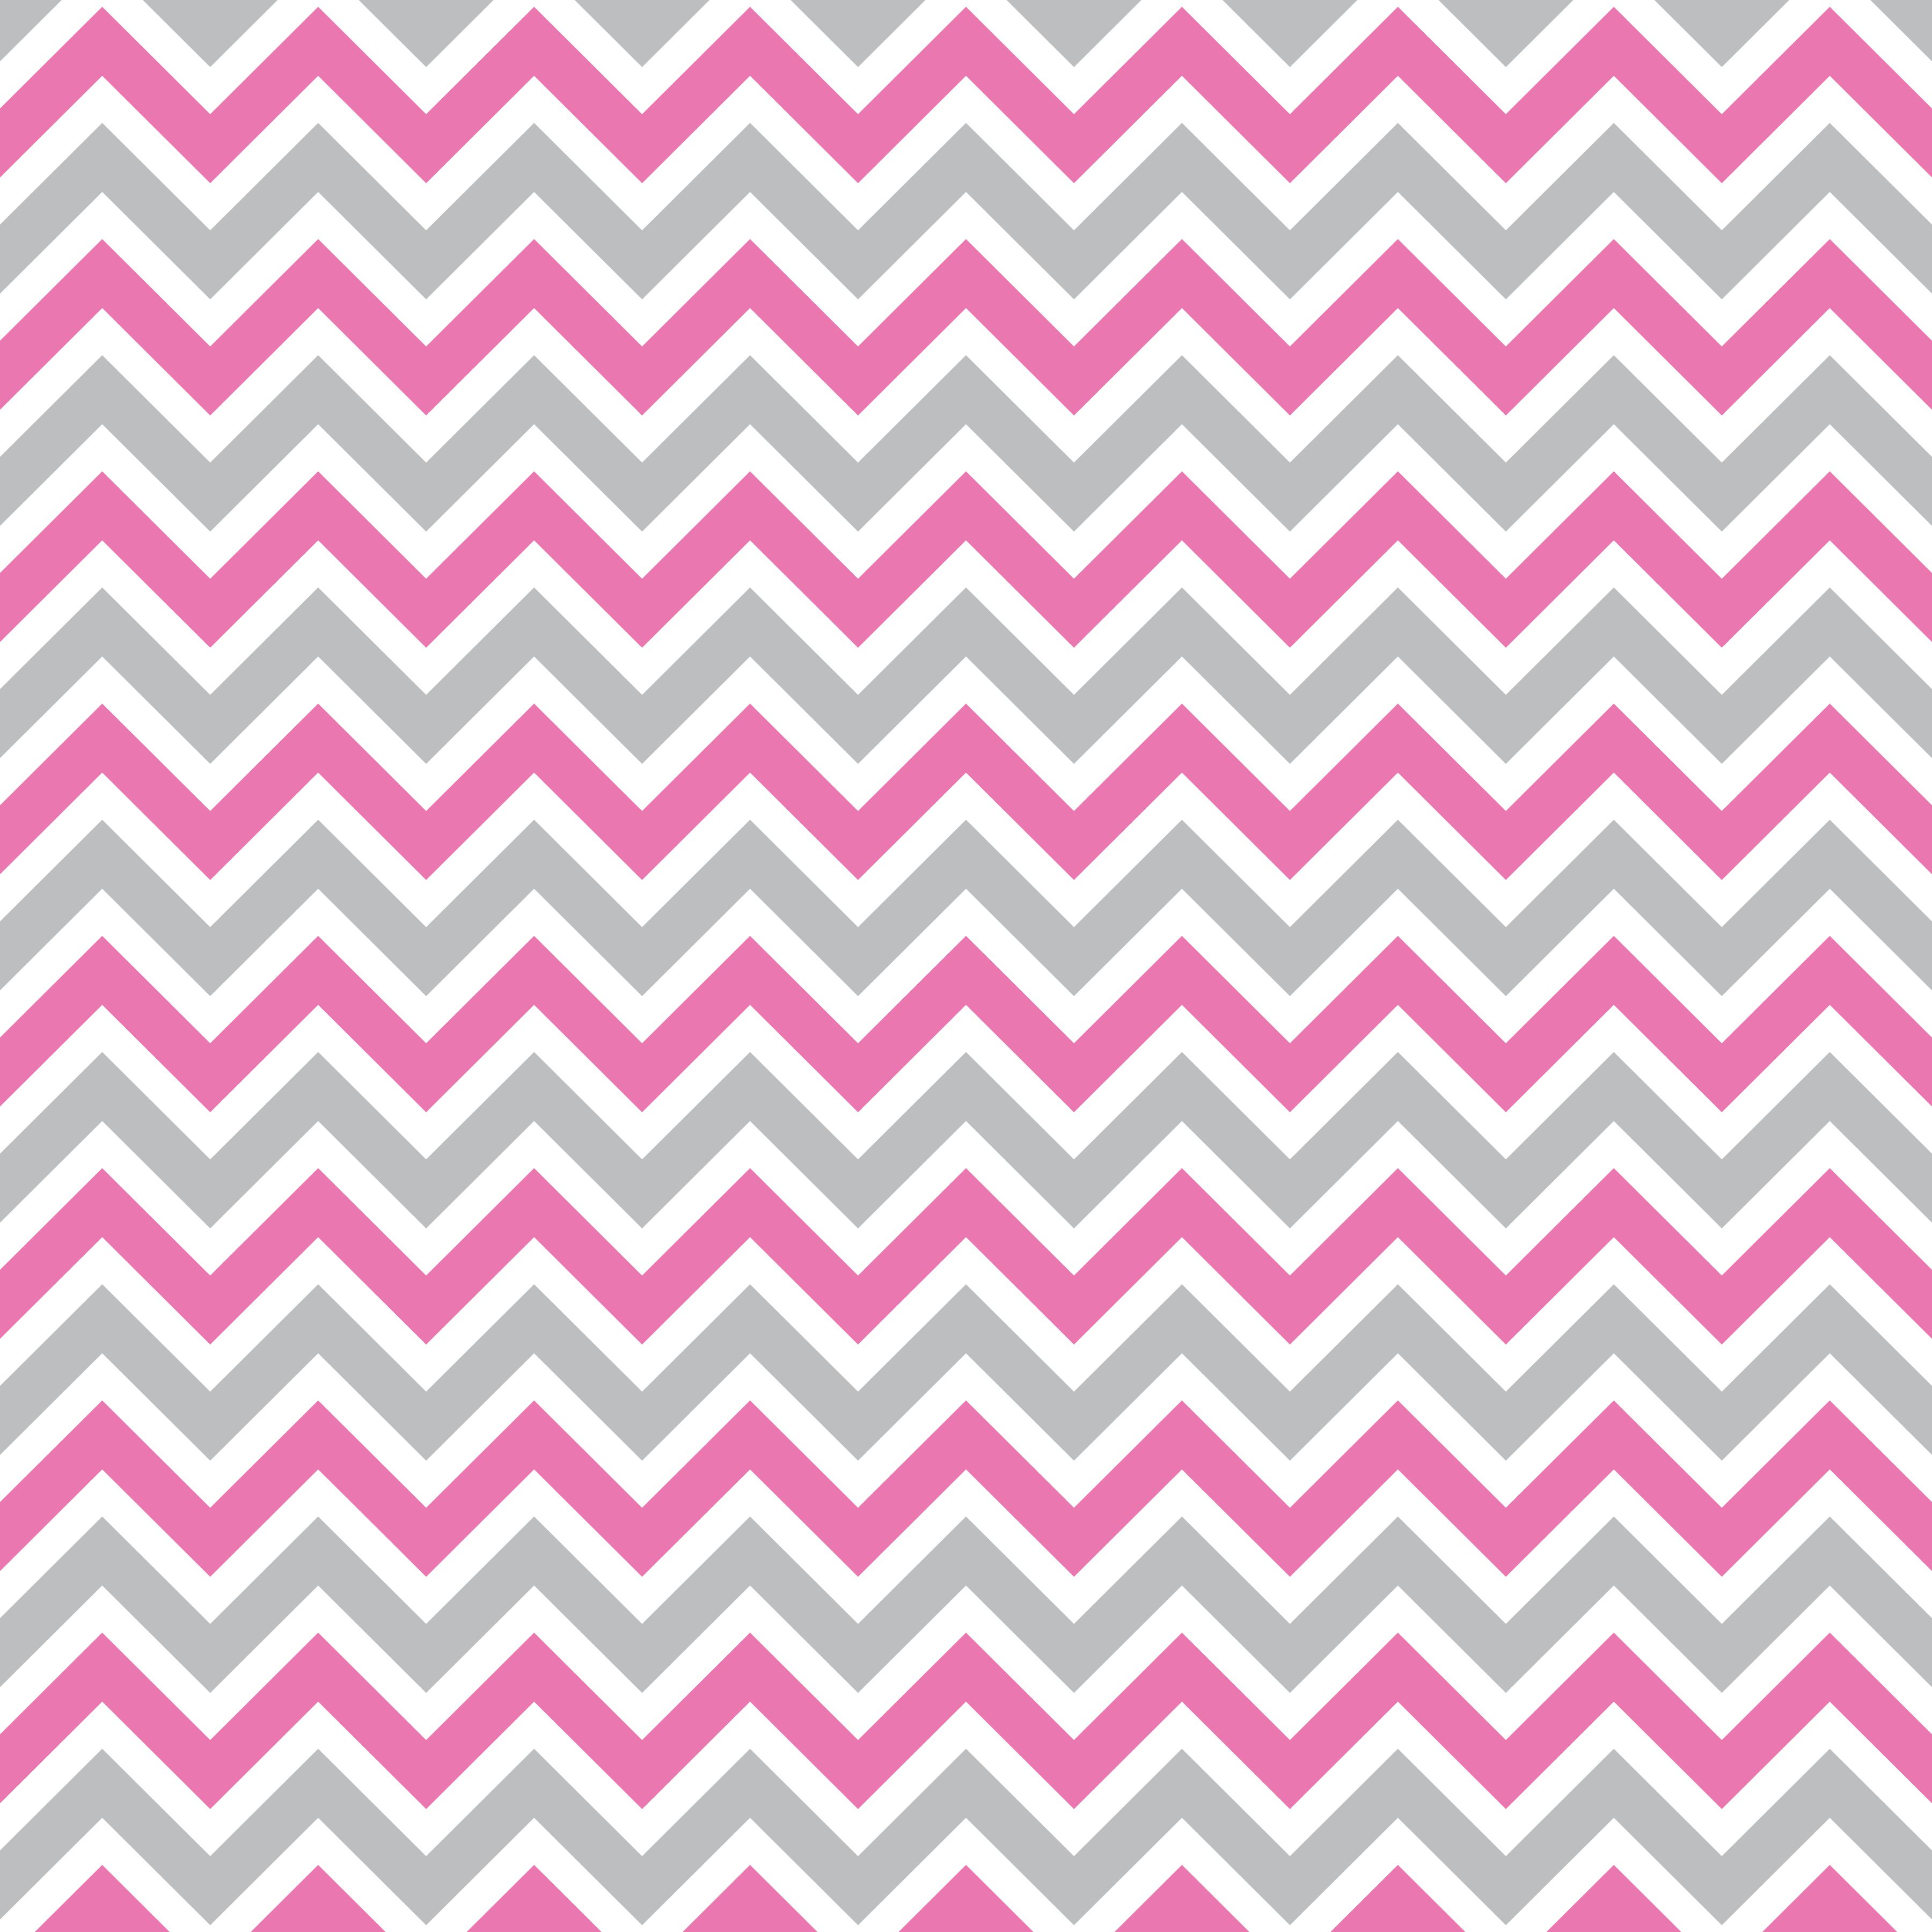 white gray pink chevron background wallpaper Pink and